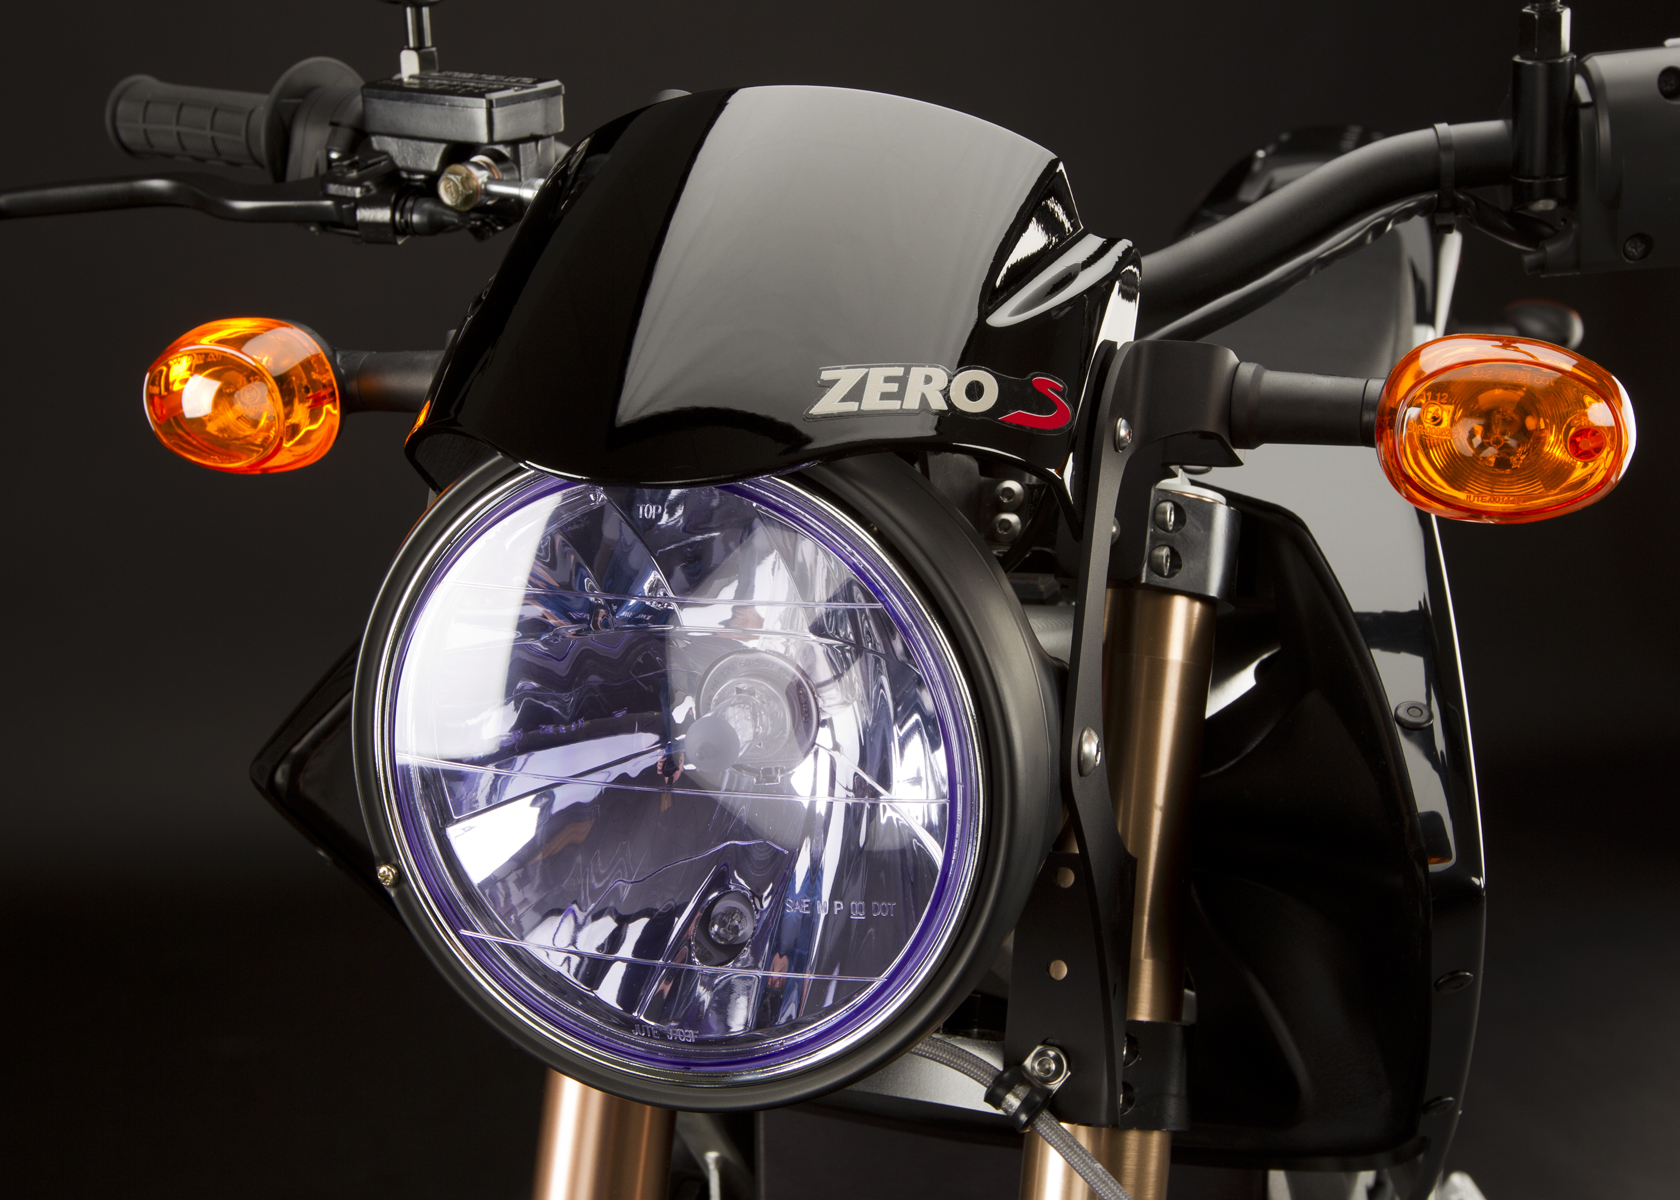 '.2011 Zero S Electric Motorcycle: Headlight.'